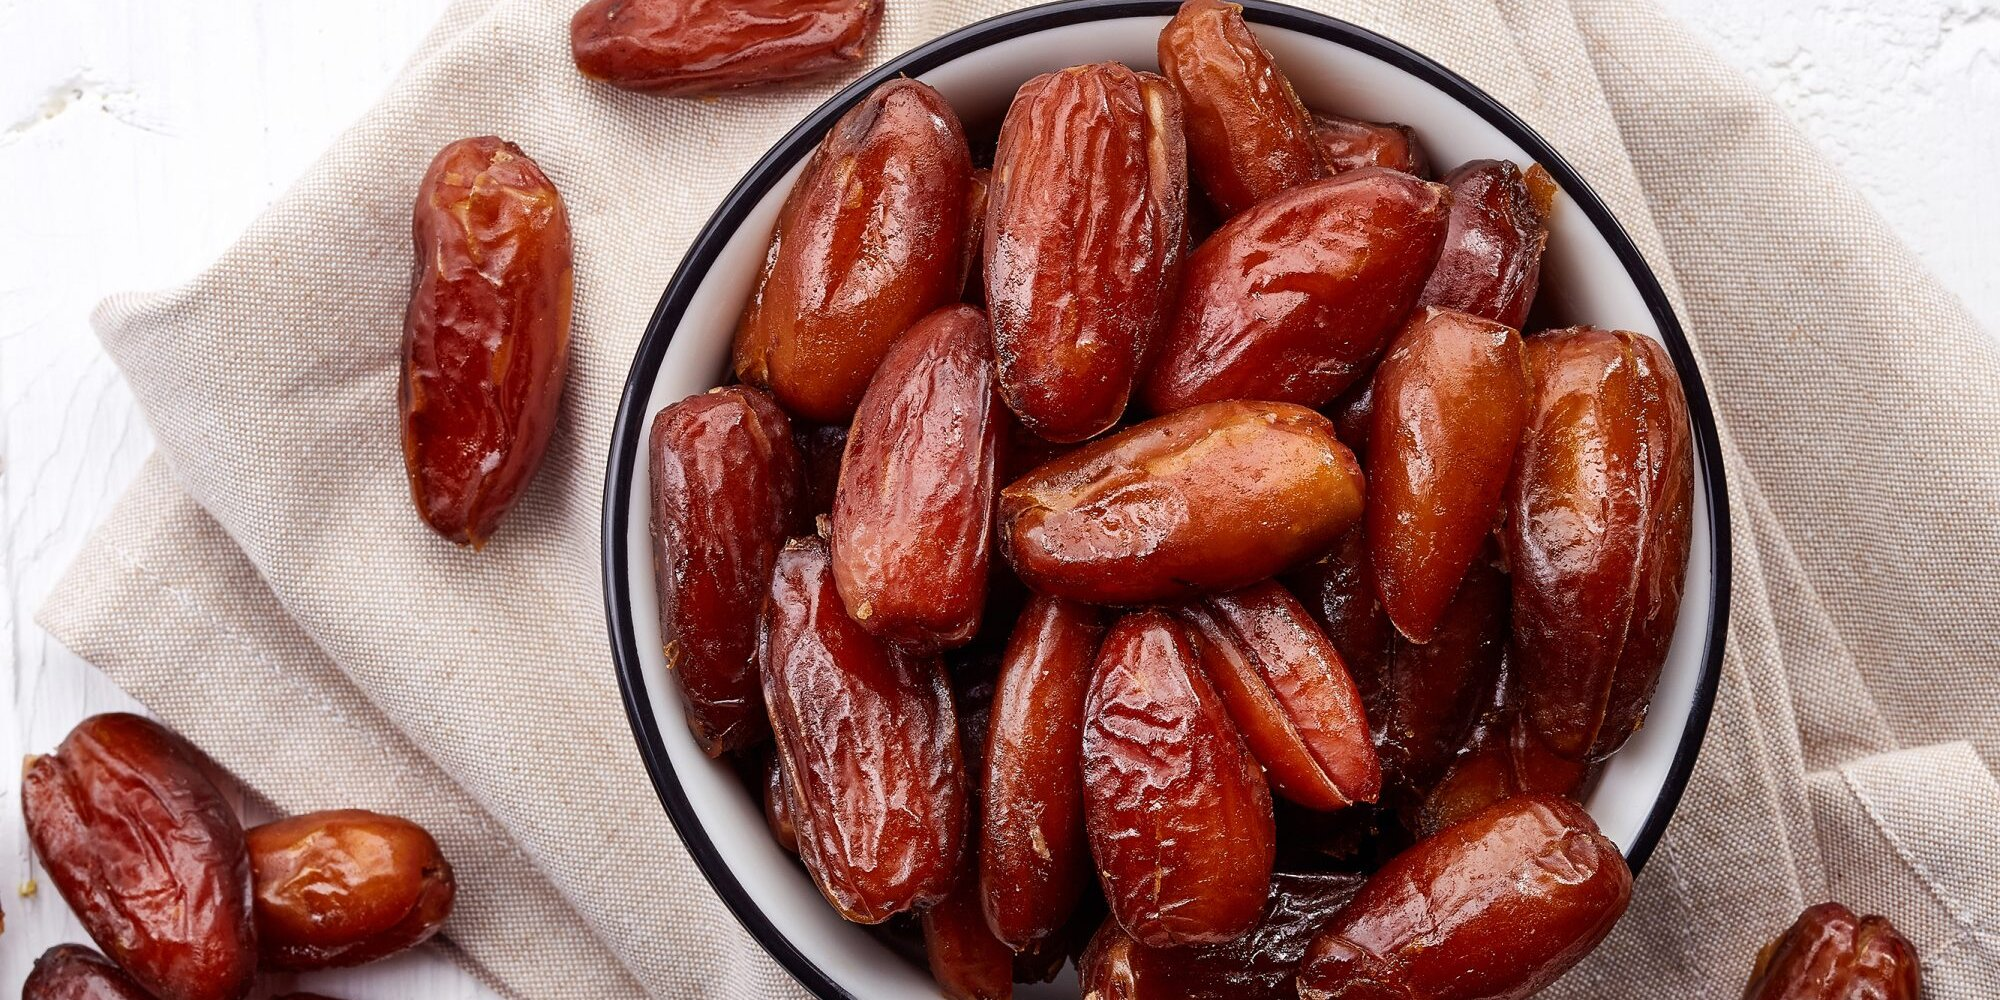 High Fiber, Healthy Flavonoids, and More Fantastic Reasons to Start Snacking on Dates